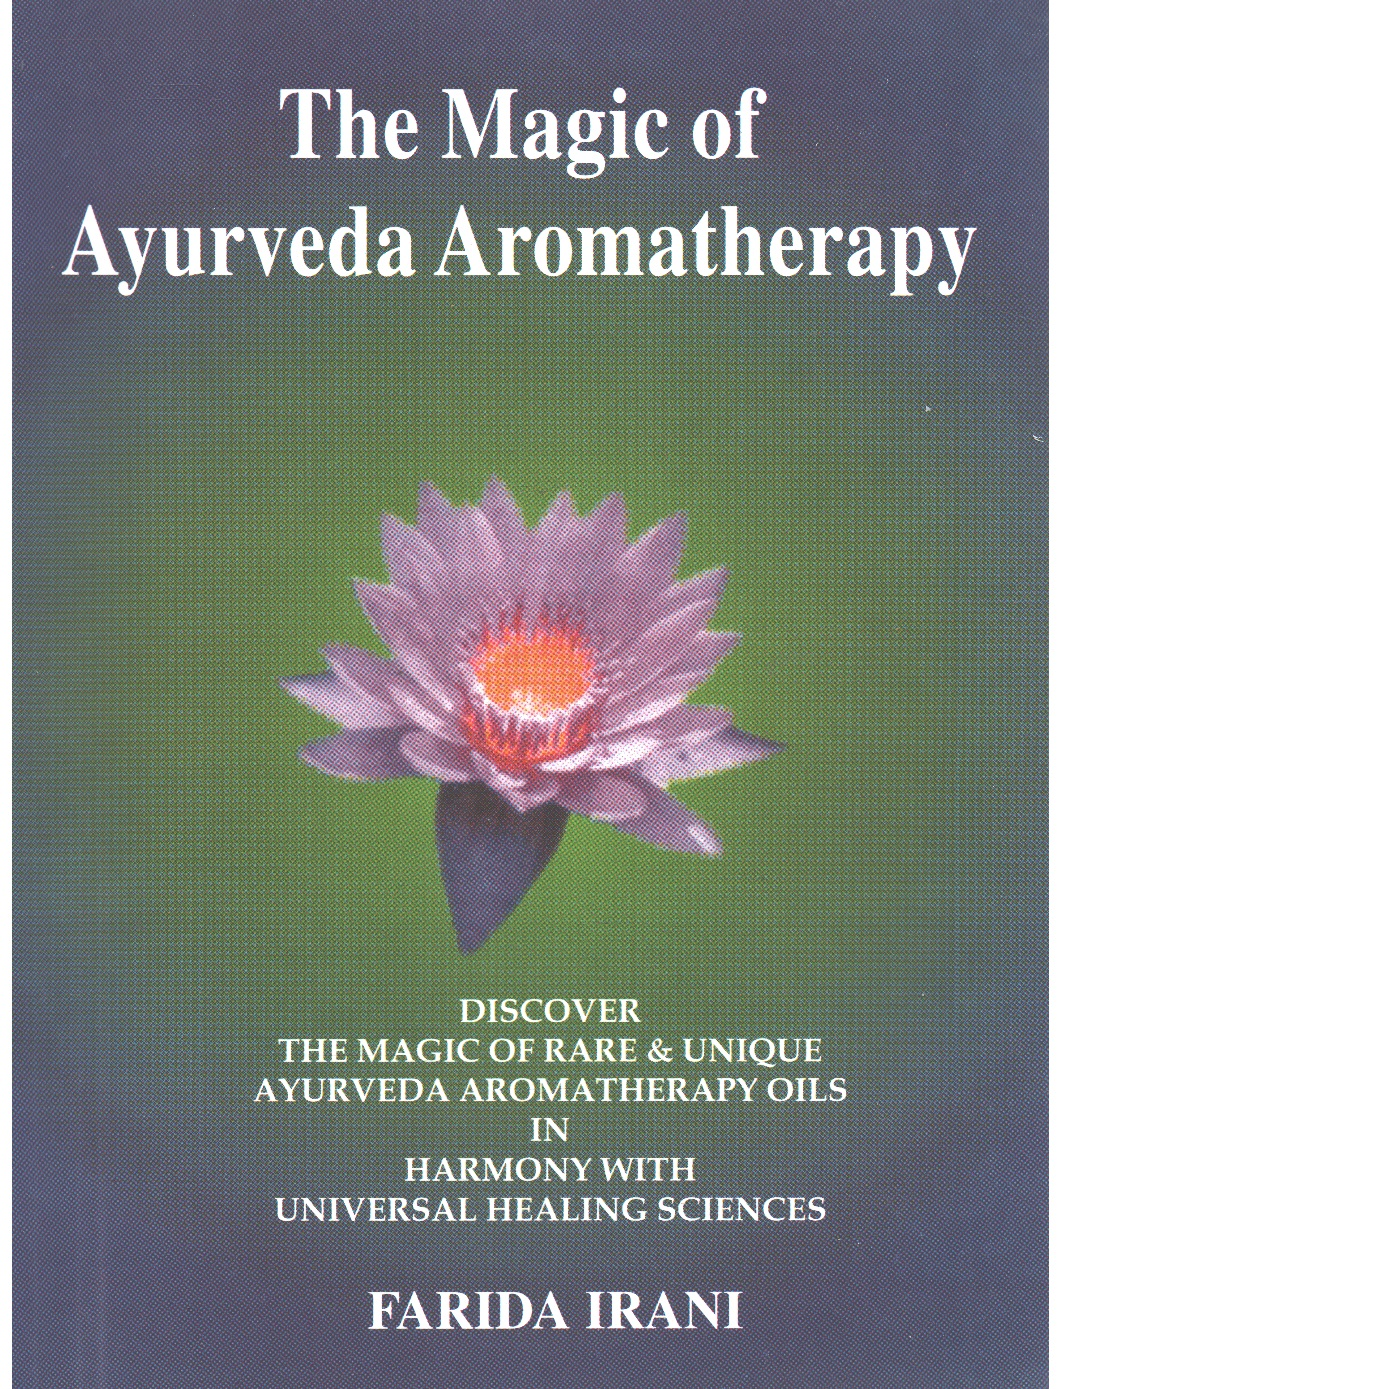 The Magic of Ayurveda Aromatherapy: Discover the Magic & Rare & Unique Ayurveda Aromatherapy Oils in Harmony with Universal Healing Success  - Irani, Farida